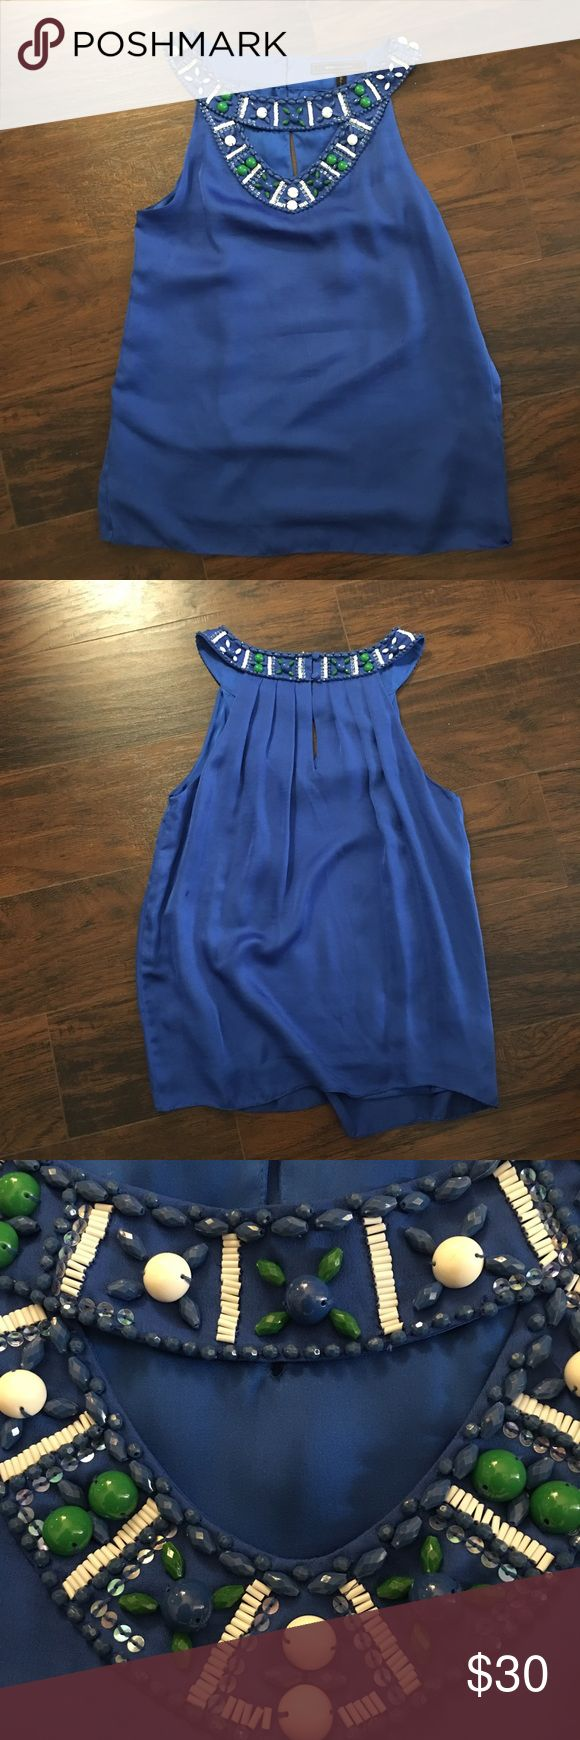 BCBGMAXAZRIA top BCBGMAXAZRIA top. This is a silky soft fabric with beaded detail around the neck. Dress the up or down. This is definitely a statement piece. BCBGMaxAzria Tops